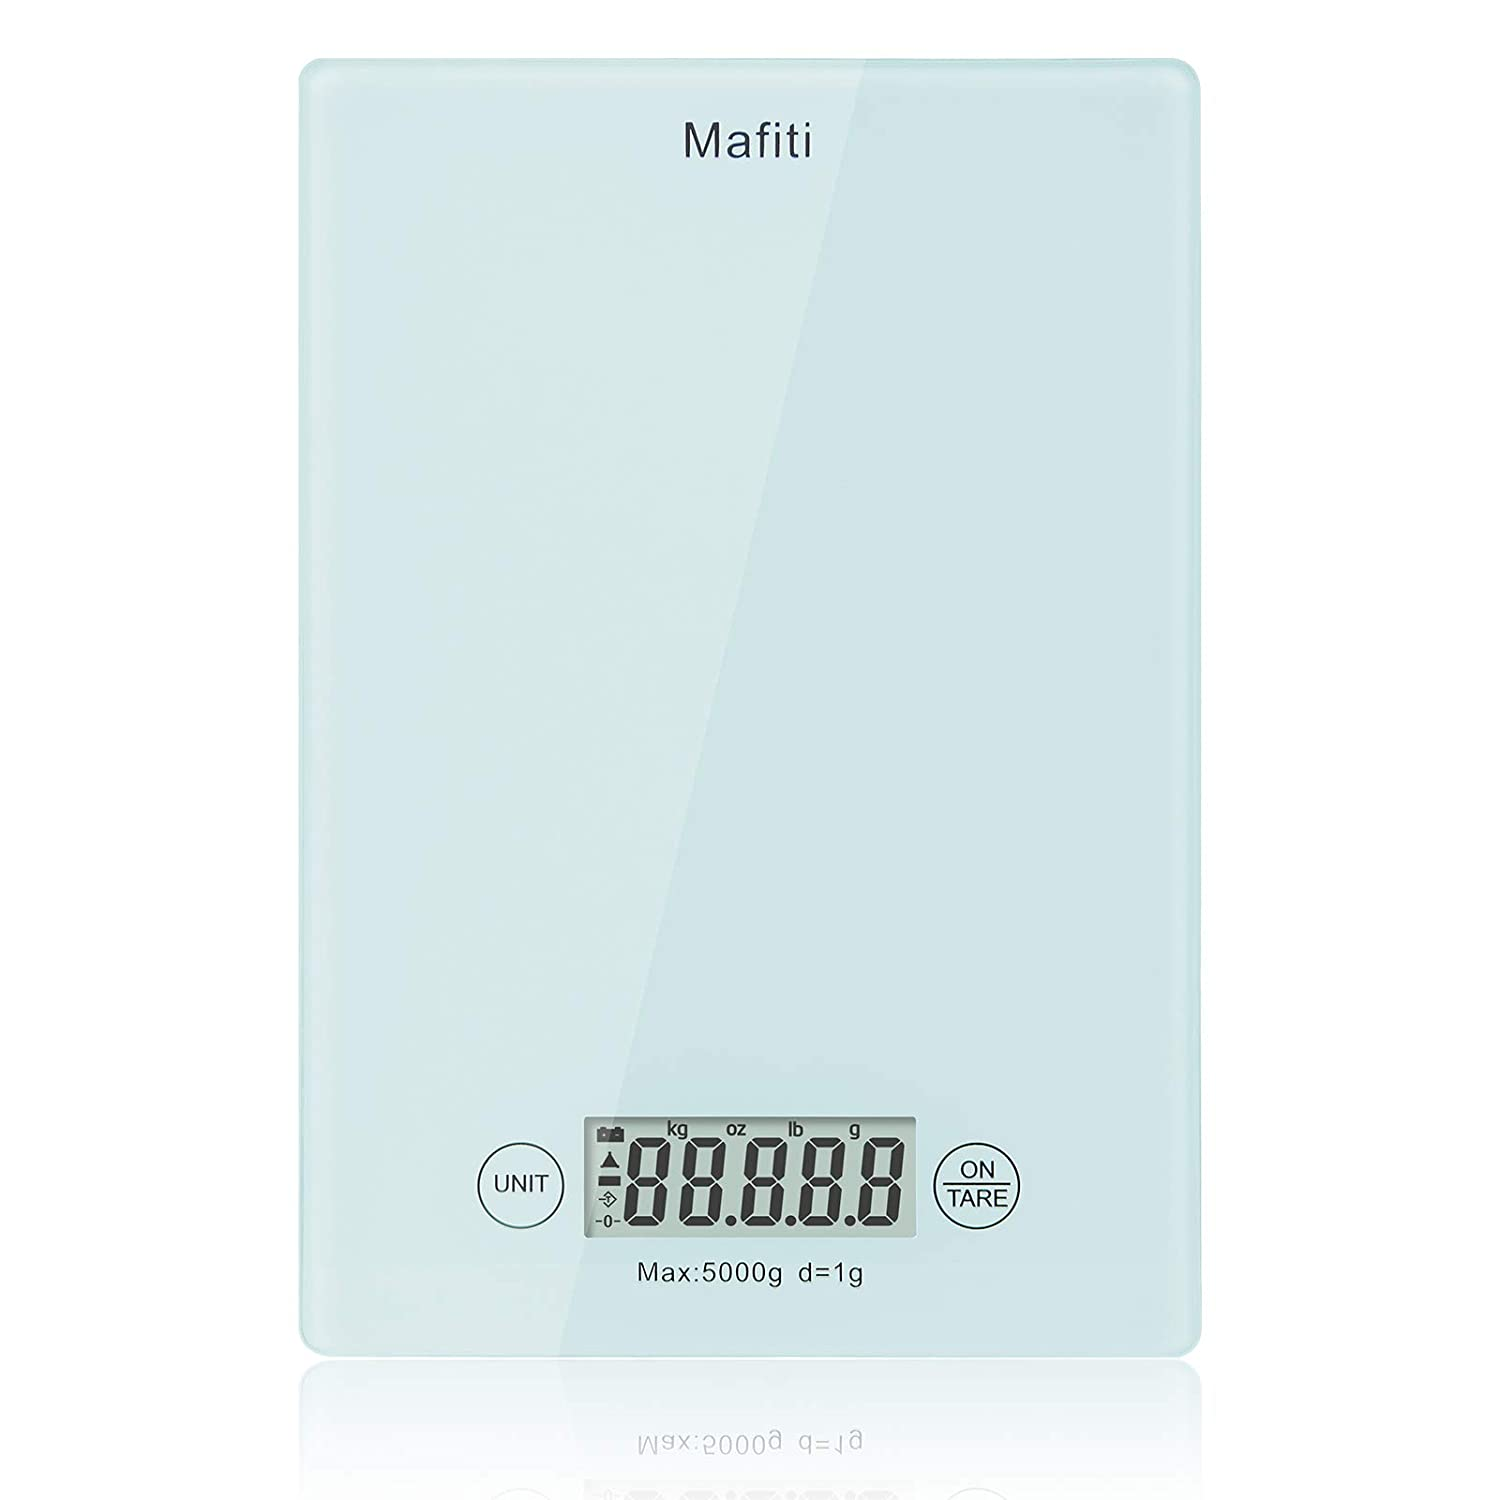 Kitchen Scale, Mafiti Digital Kitchen Scales 11lb/5kgX1g, Multifunction Measures in Kg, g, lb and OZ Digital Kitchen Weight for Food, Cooking and Baking,LCD Display (Battery No Include)